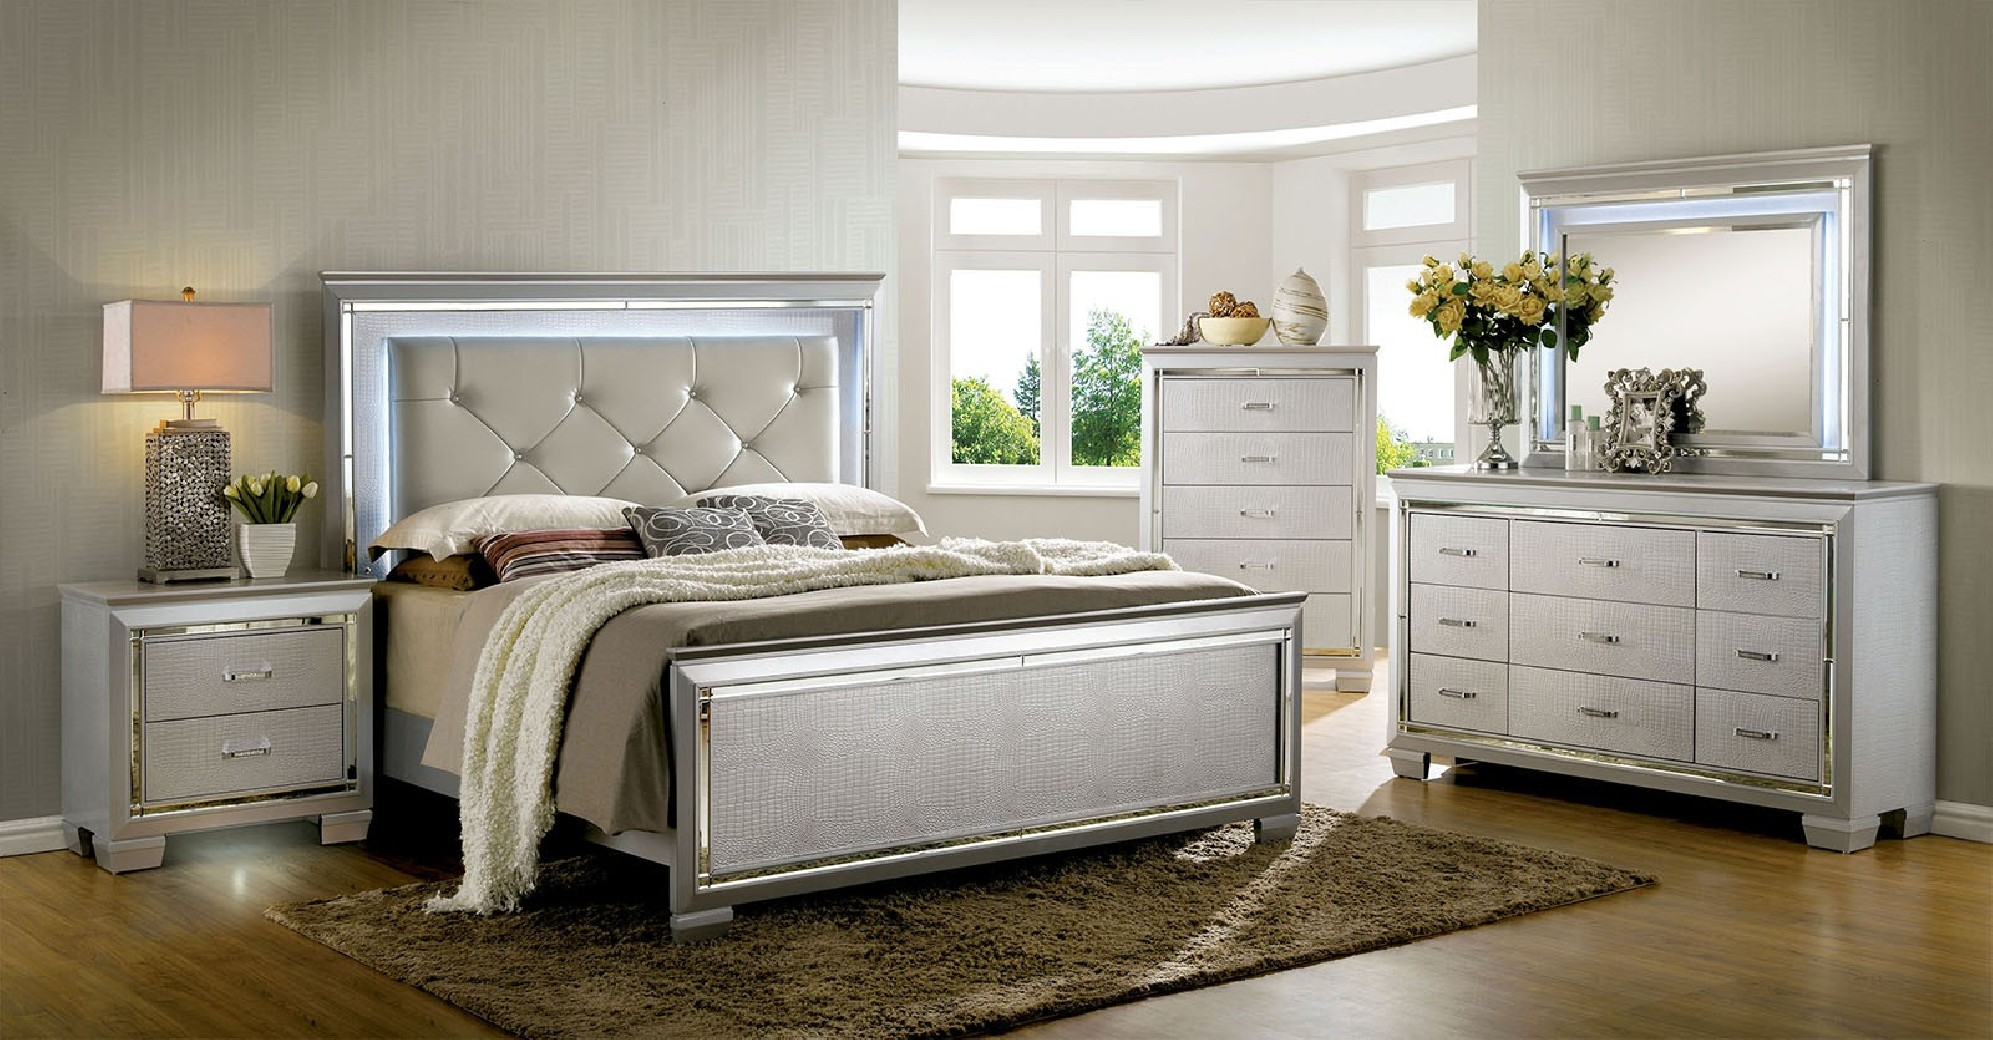 Picture of: Good Silver Bedroom Set Ideas